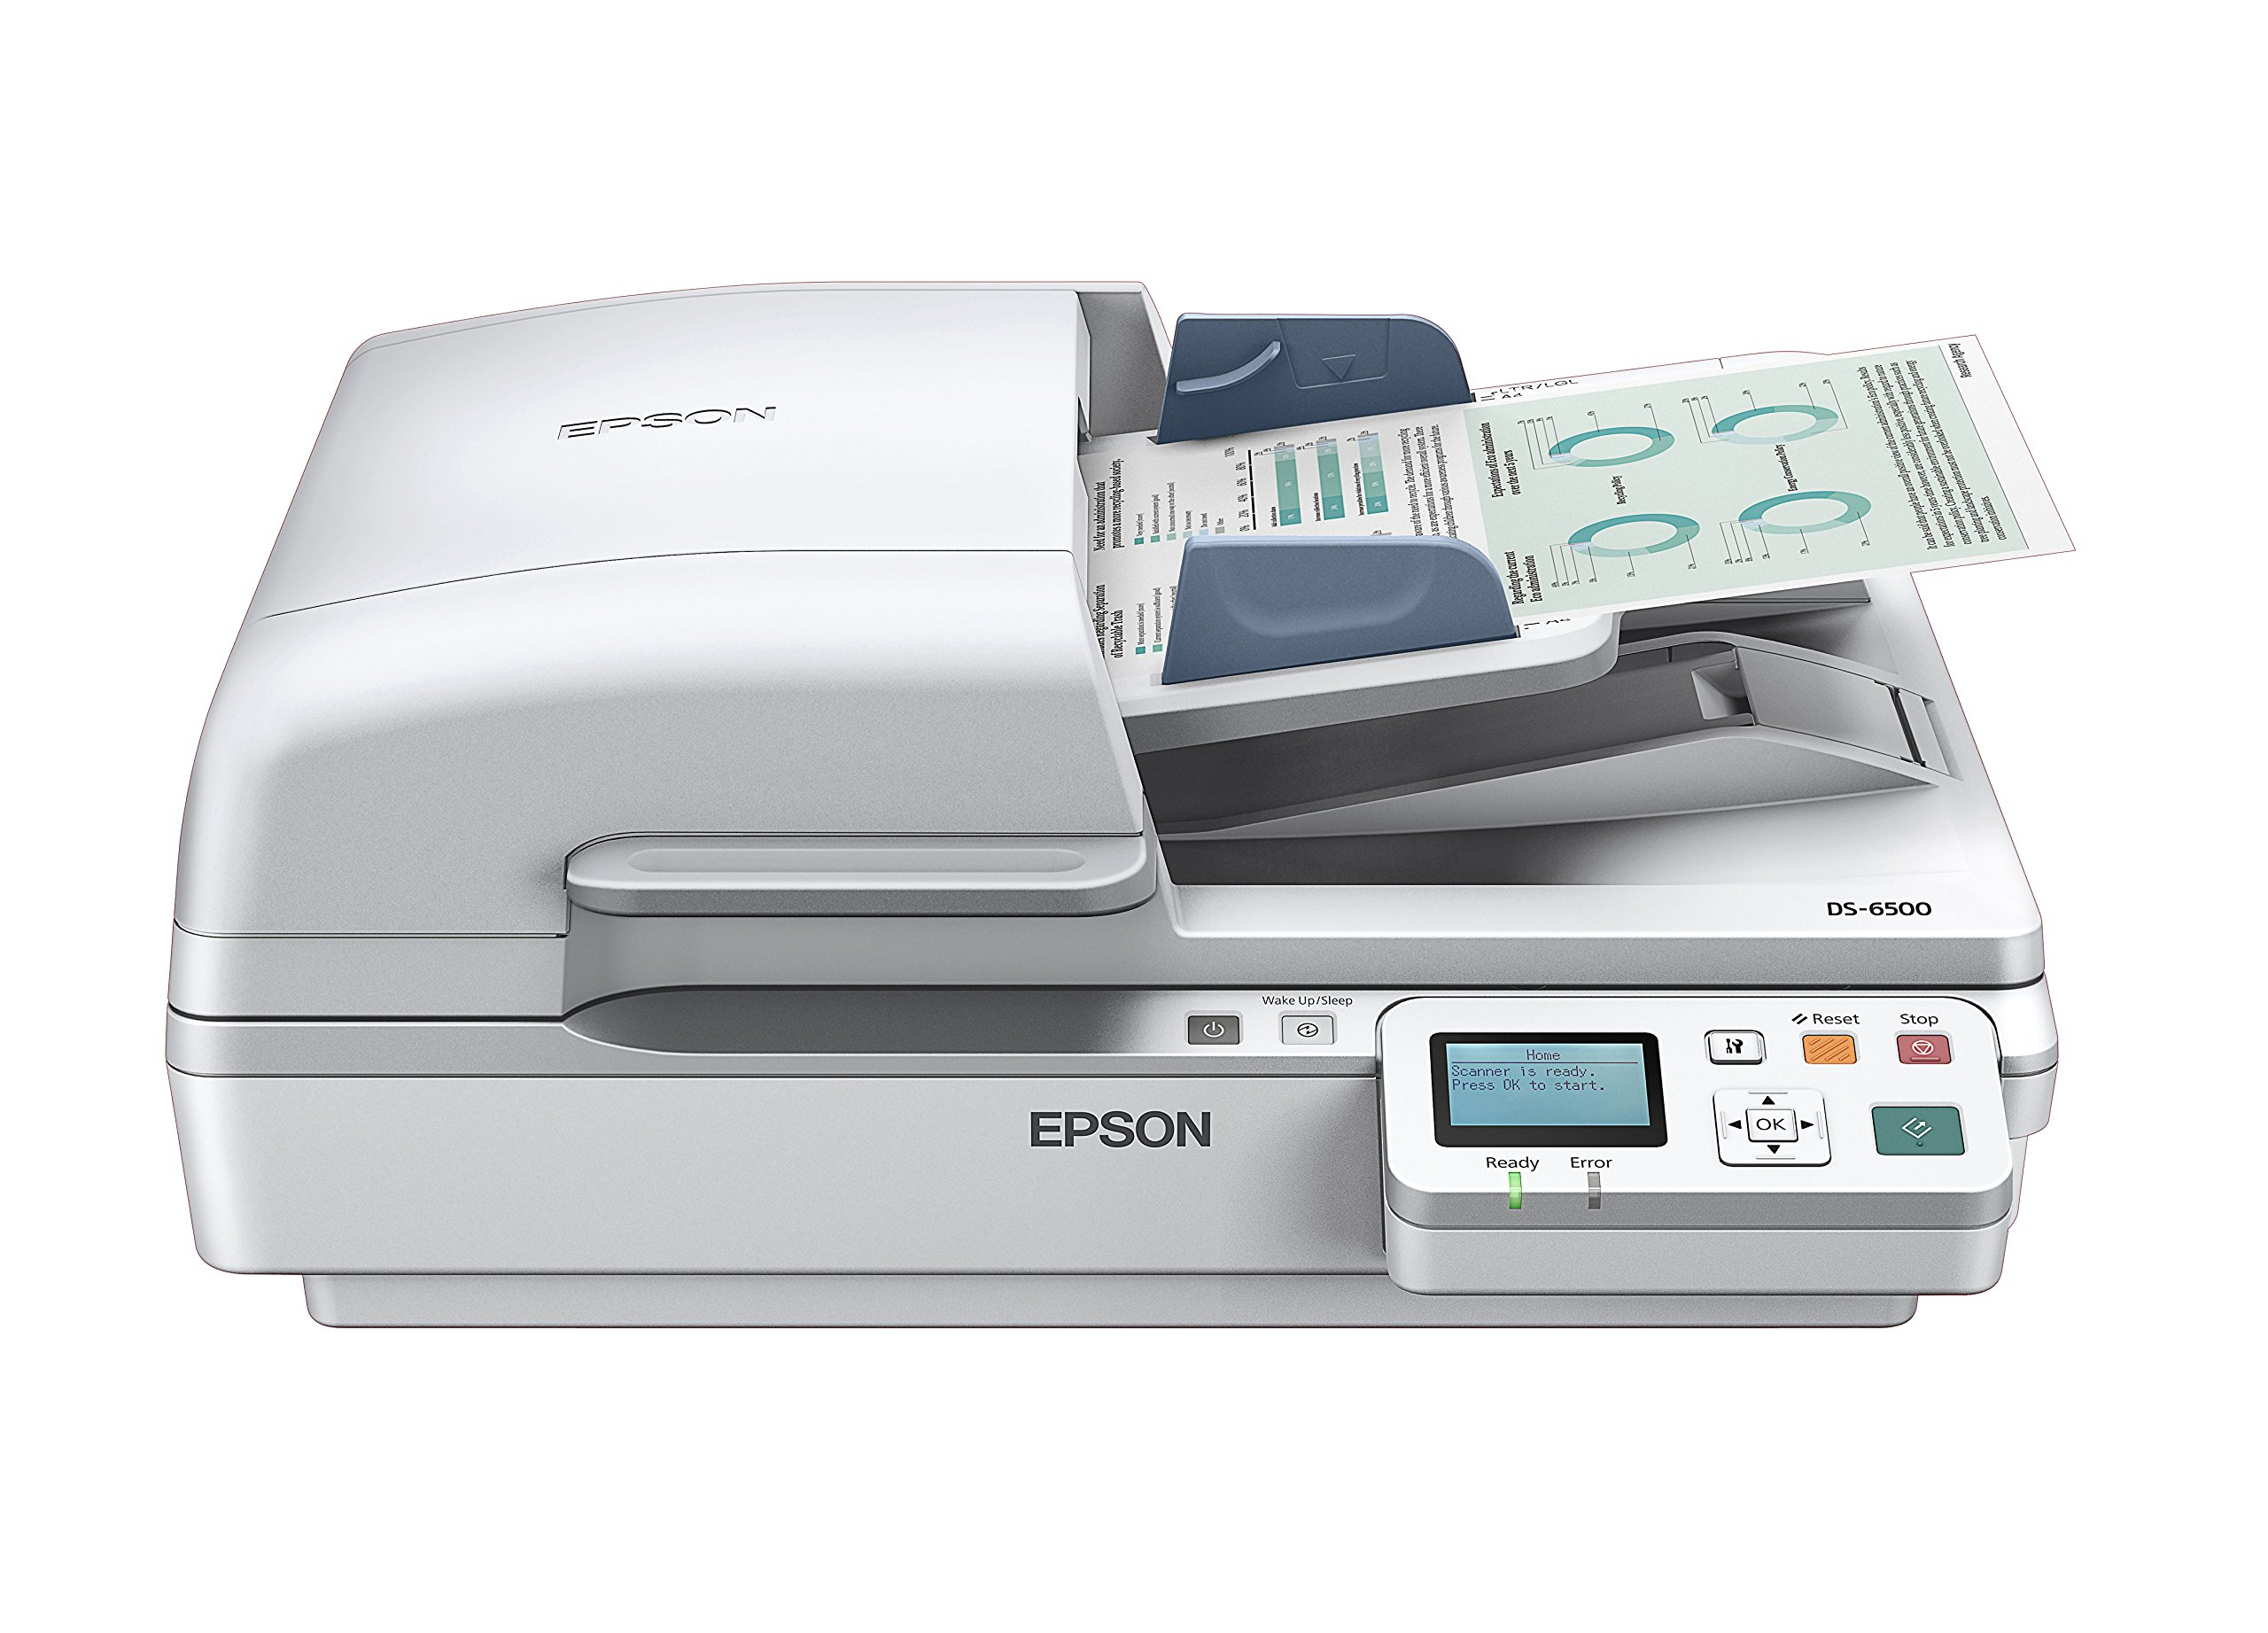 Epson DS-6500 Document Scanner:  25ppm, TWAIN & ISIS Drivers, 3-Year Warranty with Next Business Day Replacement